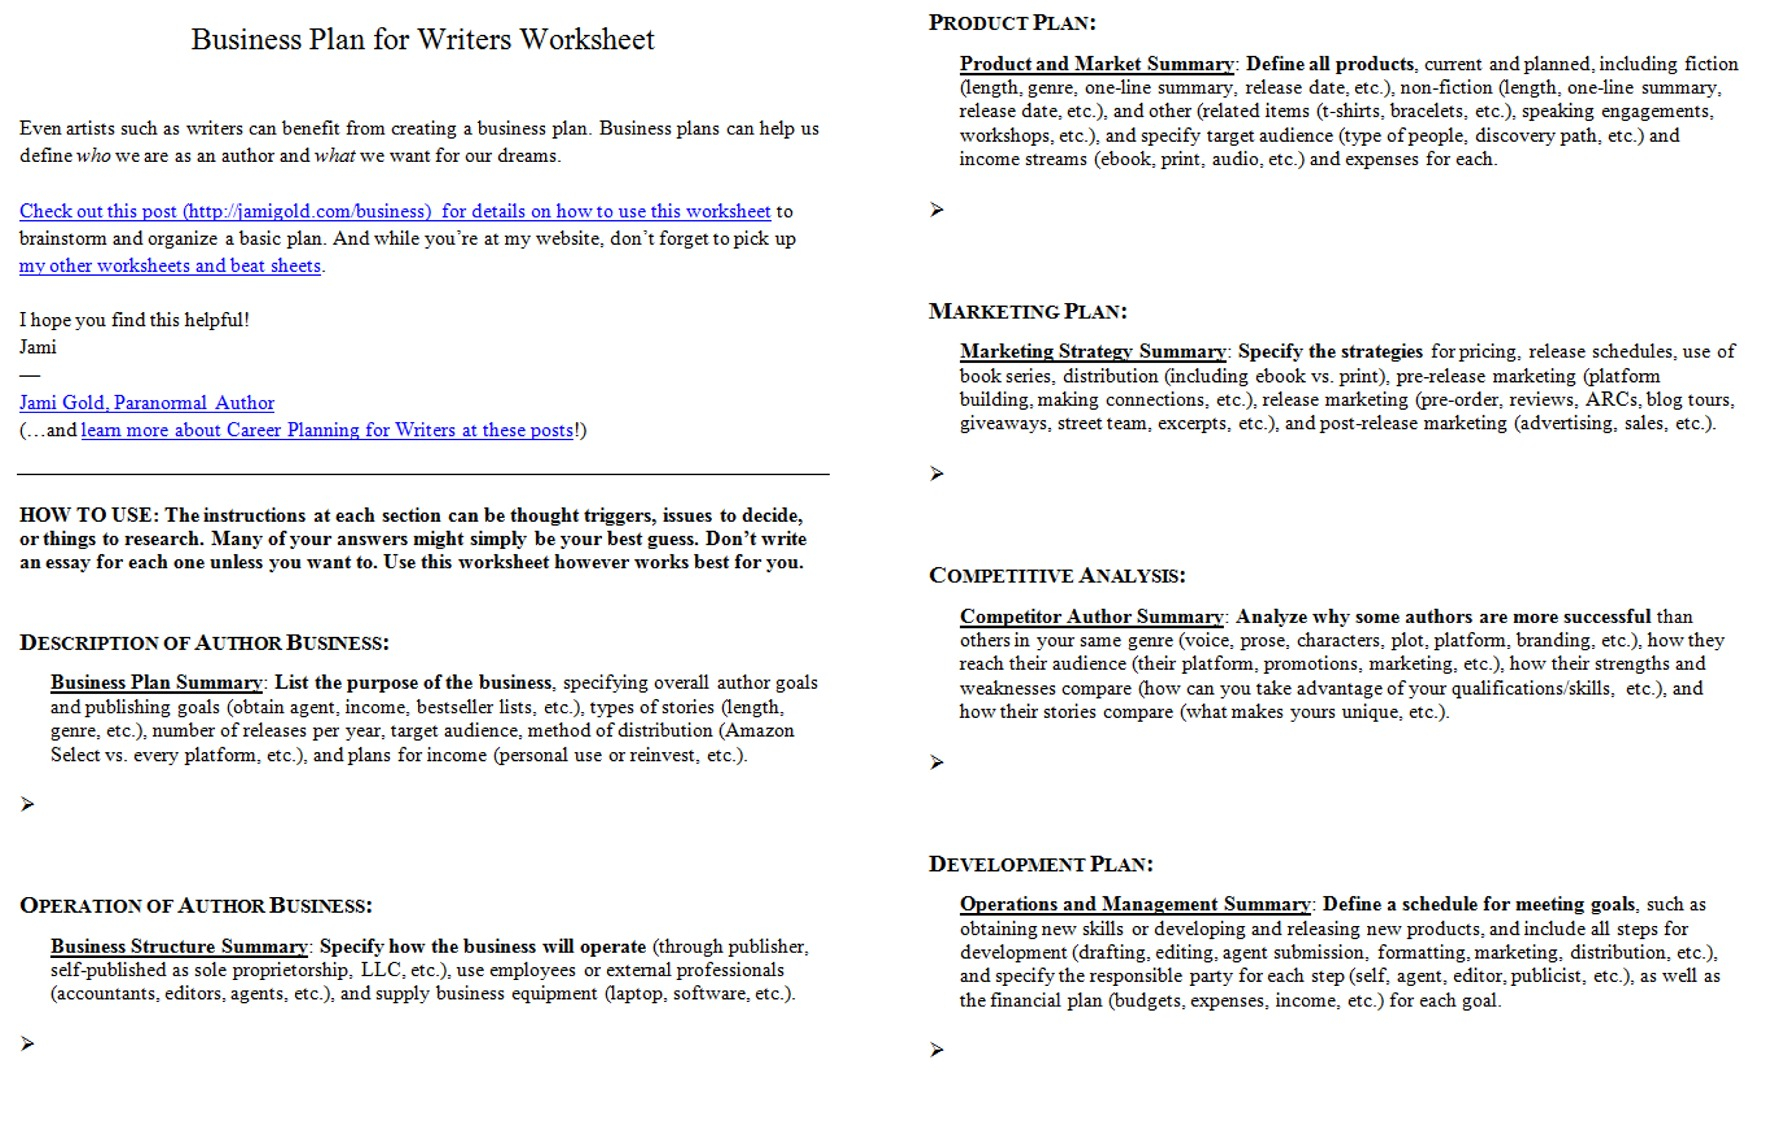 Aldiablosus  Splendid Worksheets For Writers  Jami Gold Paranormal Author With Gorgeous Screen Shot Of Both Pages Of The Business Plan For Writers Worksheet With Delightful Writing Numbers   Printable Worksheets Also Free Youth Bible Study Worksheets In Addition The Parts Of A Castle Worksheet And Worksheet On Subject Pronouns As Well As Permutations And Combinations Worksheet High School Additionally Shading Worksheet From Jamigoldcom With Aldiablosus  Gorgeous Worksheets For Writers  Jami Gold Paranormal Author With Delightful Screen Shot Of Both Pages Of The Business Plan For Writers Worksheet And Splendid Writing Numbers   Printable Worksheets Also Free Youth Bible Study Worksheets In Addition The Parts Of A Castle Worksheet From Jamigoldcom